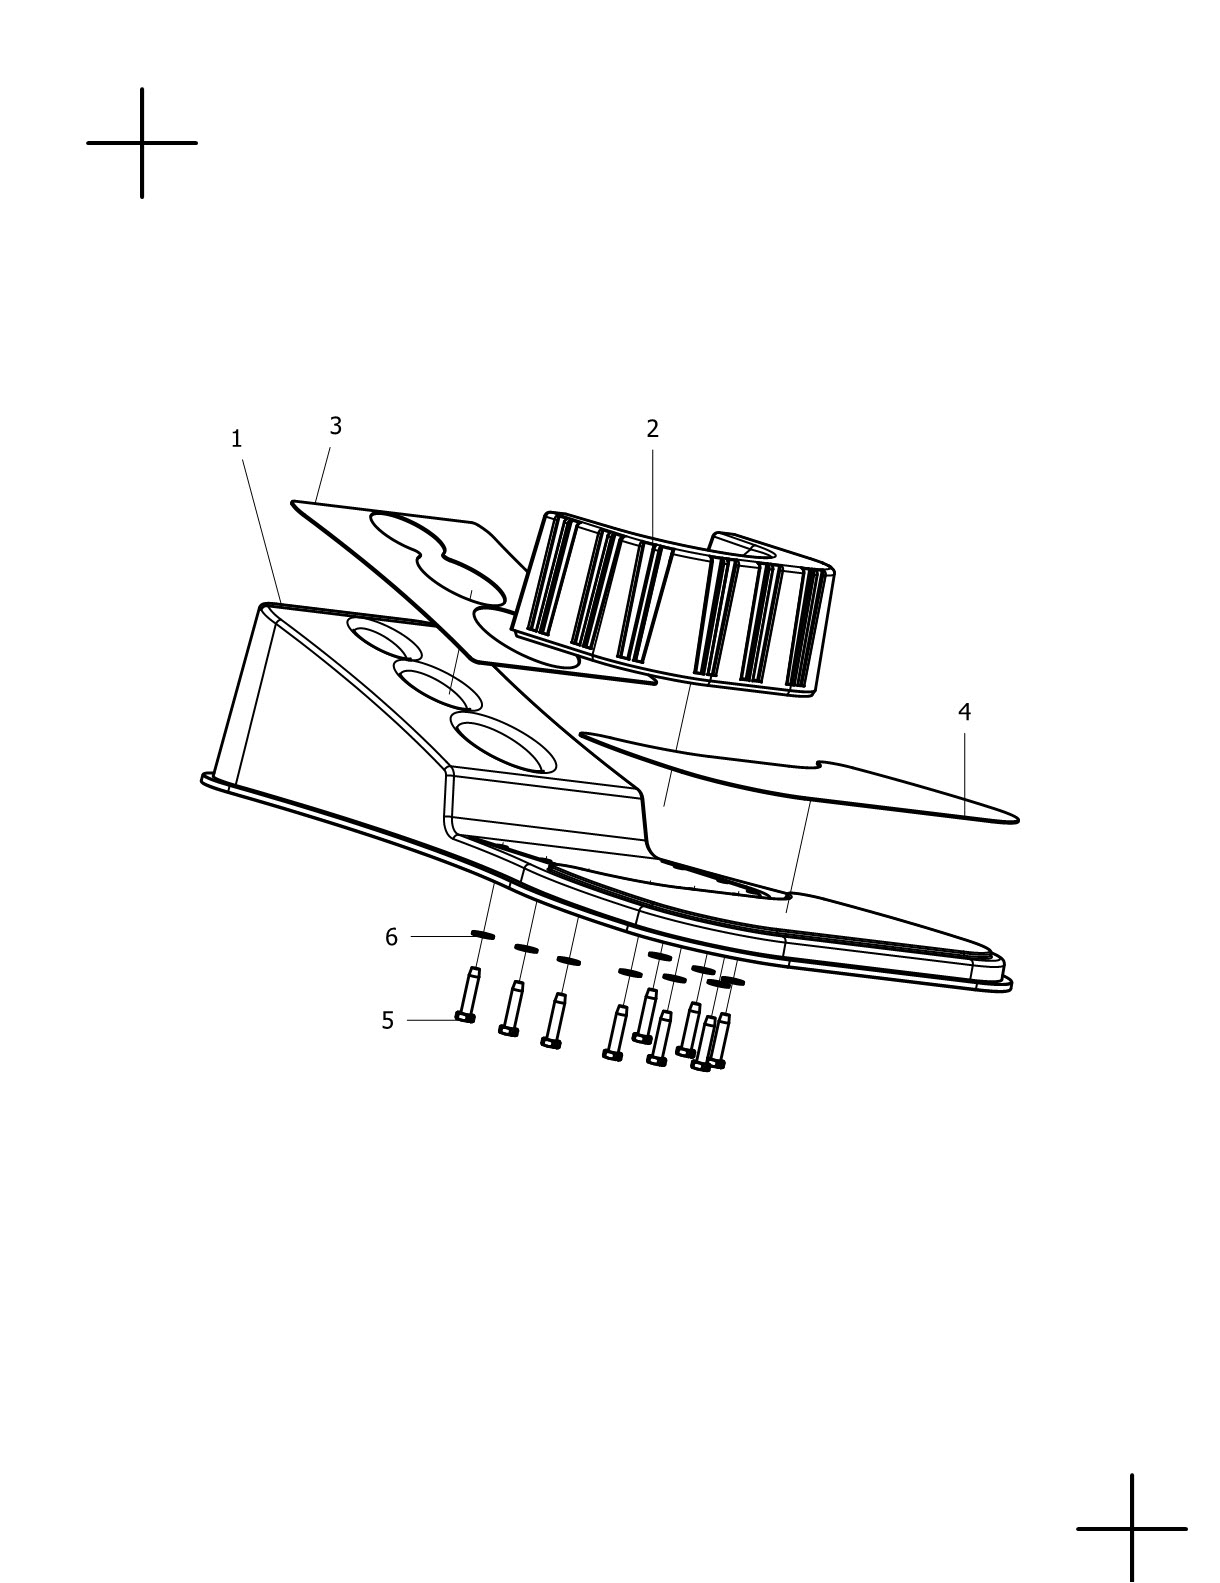 patent drawing debooter 2